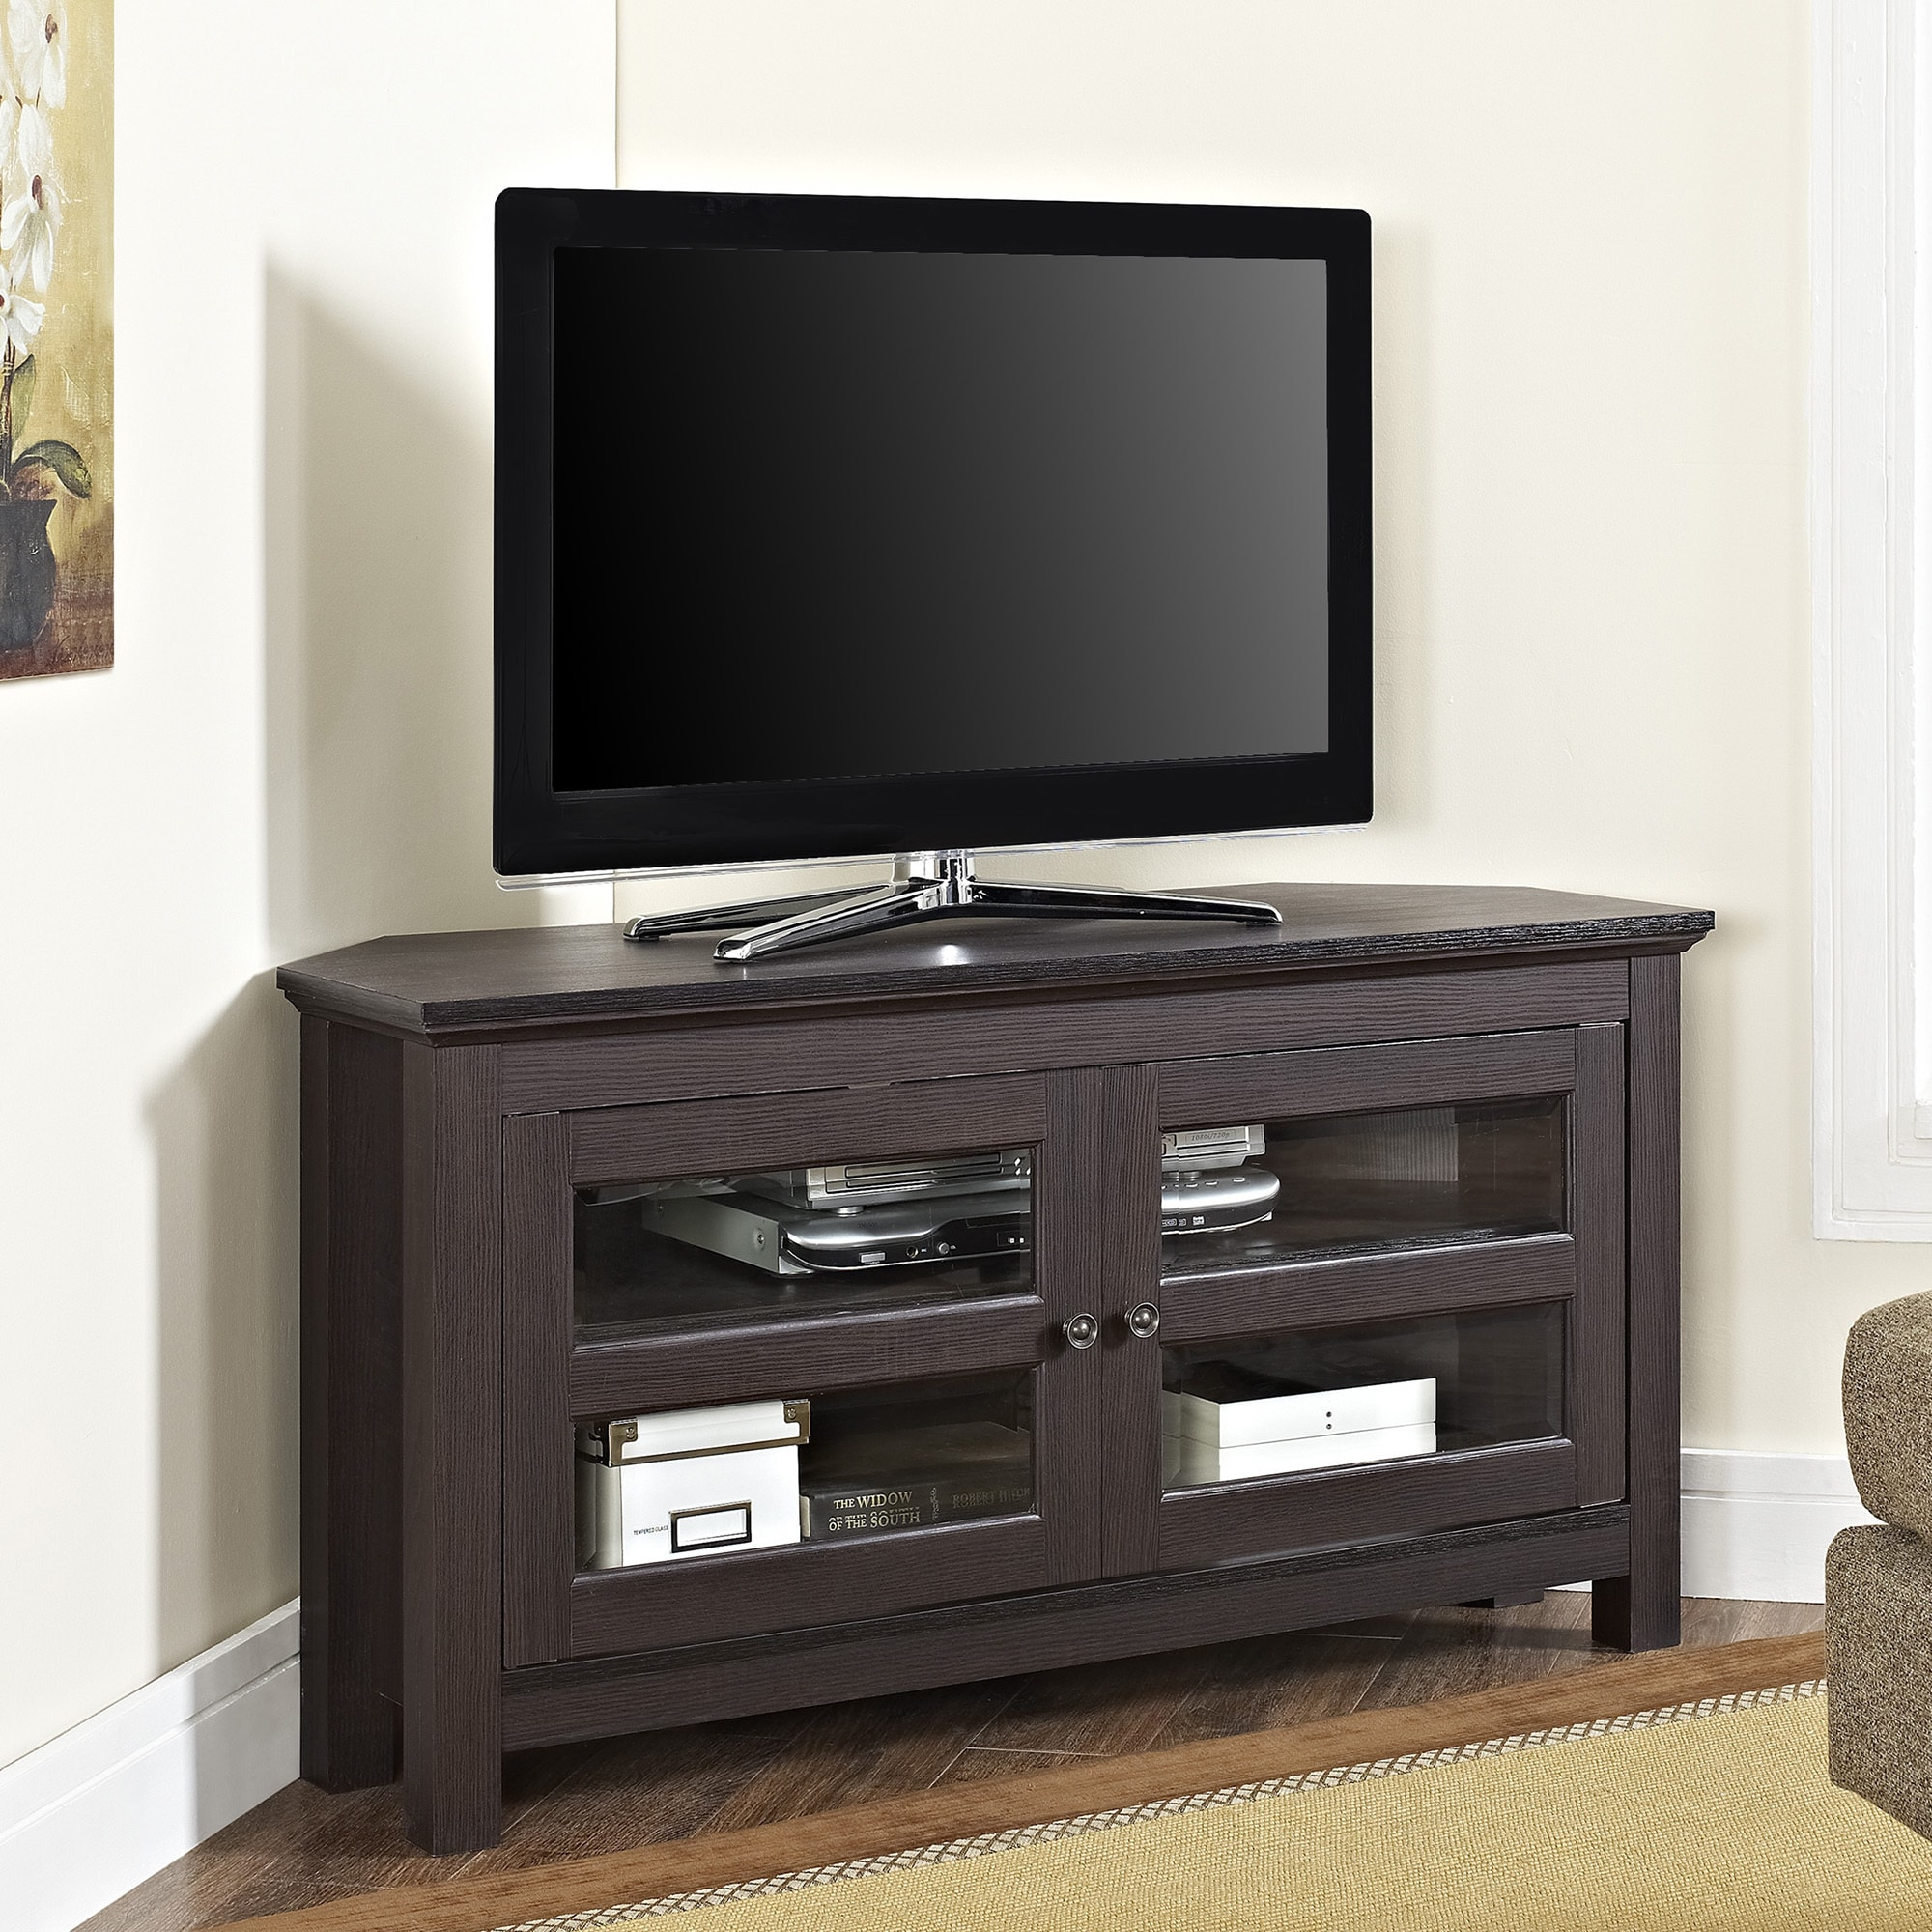 Porch Den Forest Park Ogden Espresso Wood 44 Inch Corner Tv Stand On Free Shipping Today 22751169